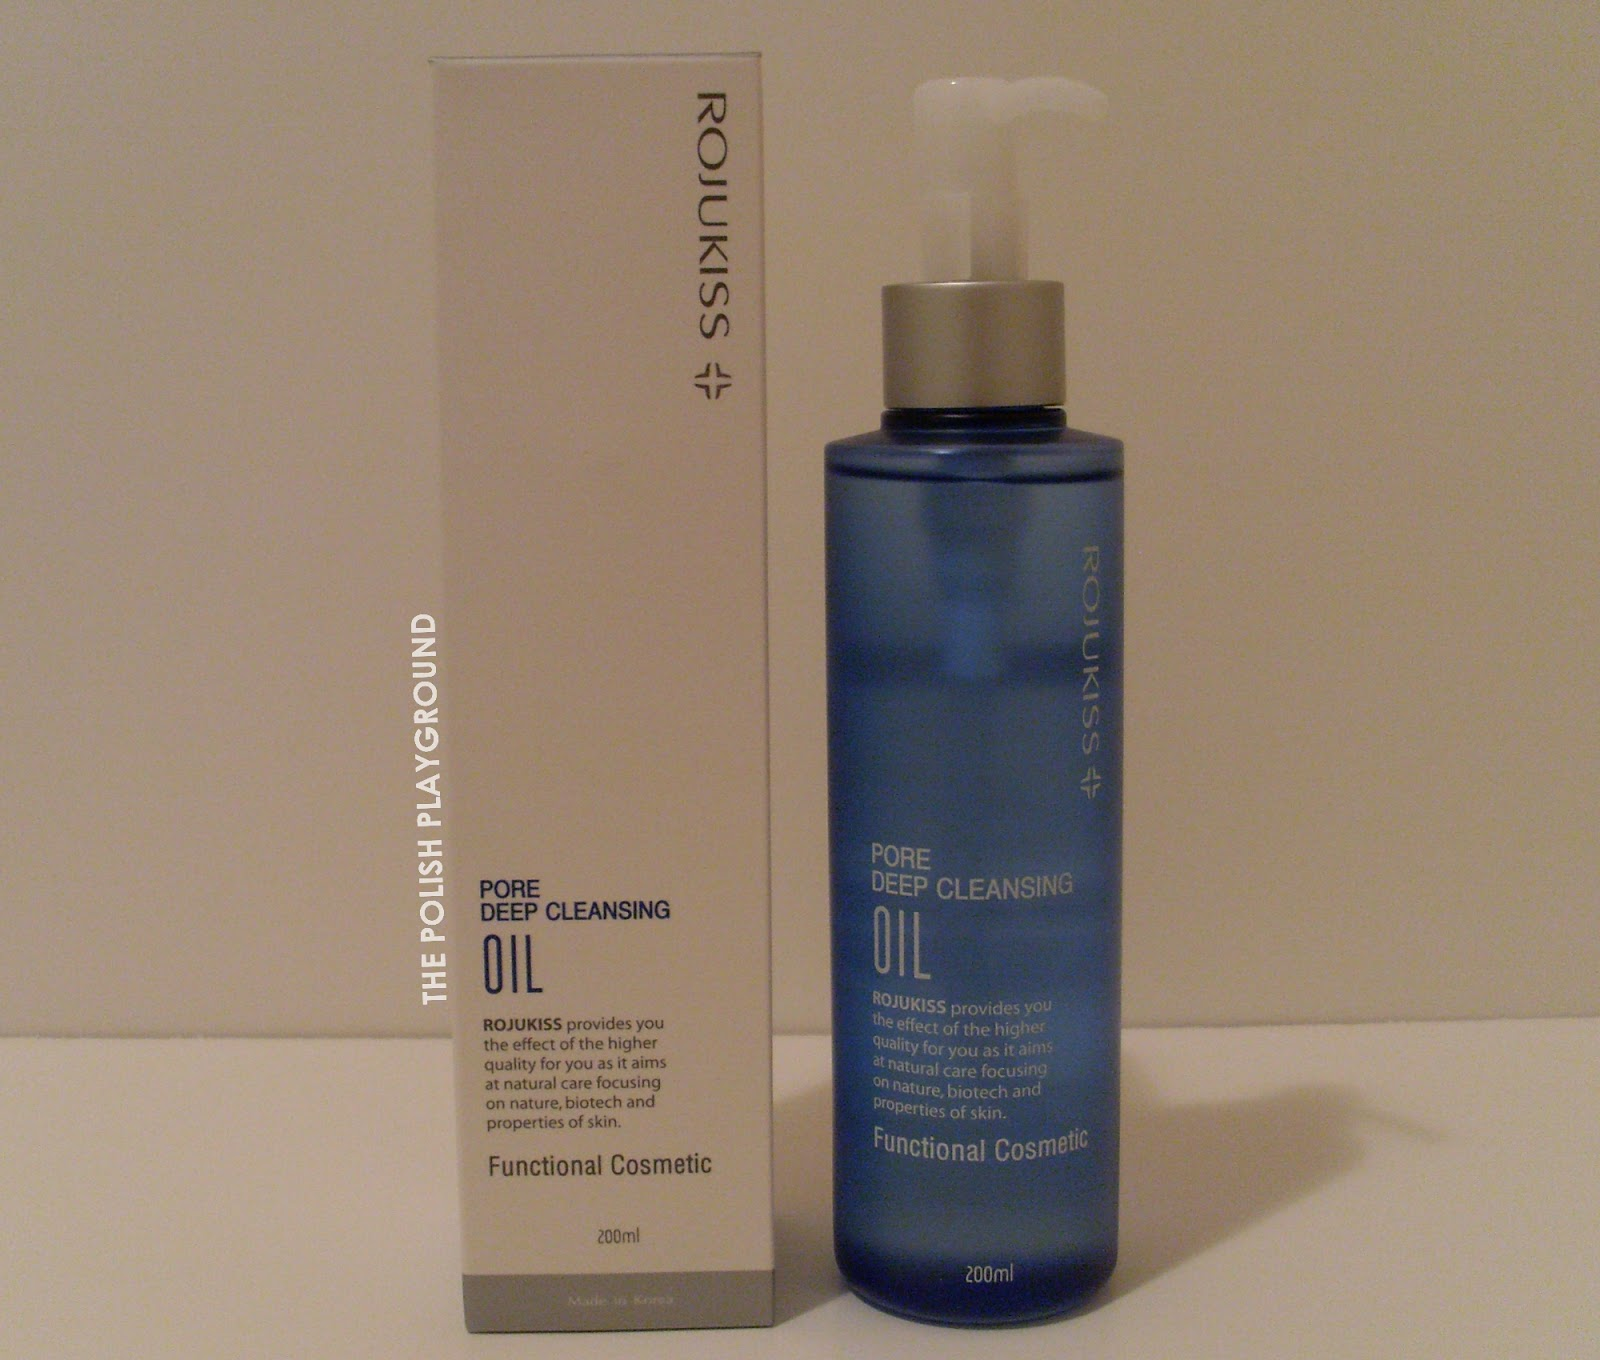 Wishtrend Haul - Rojukiss Pore Deep Cleansing Oil